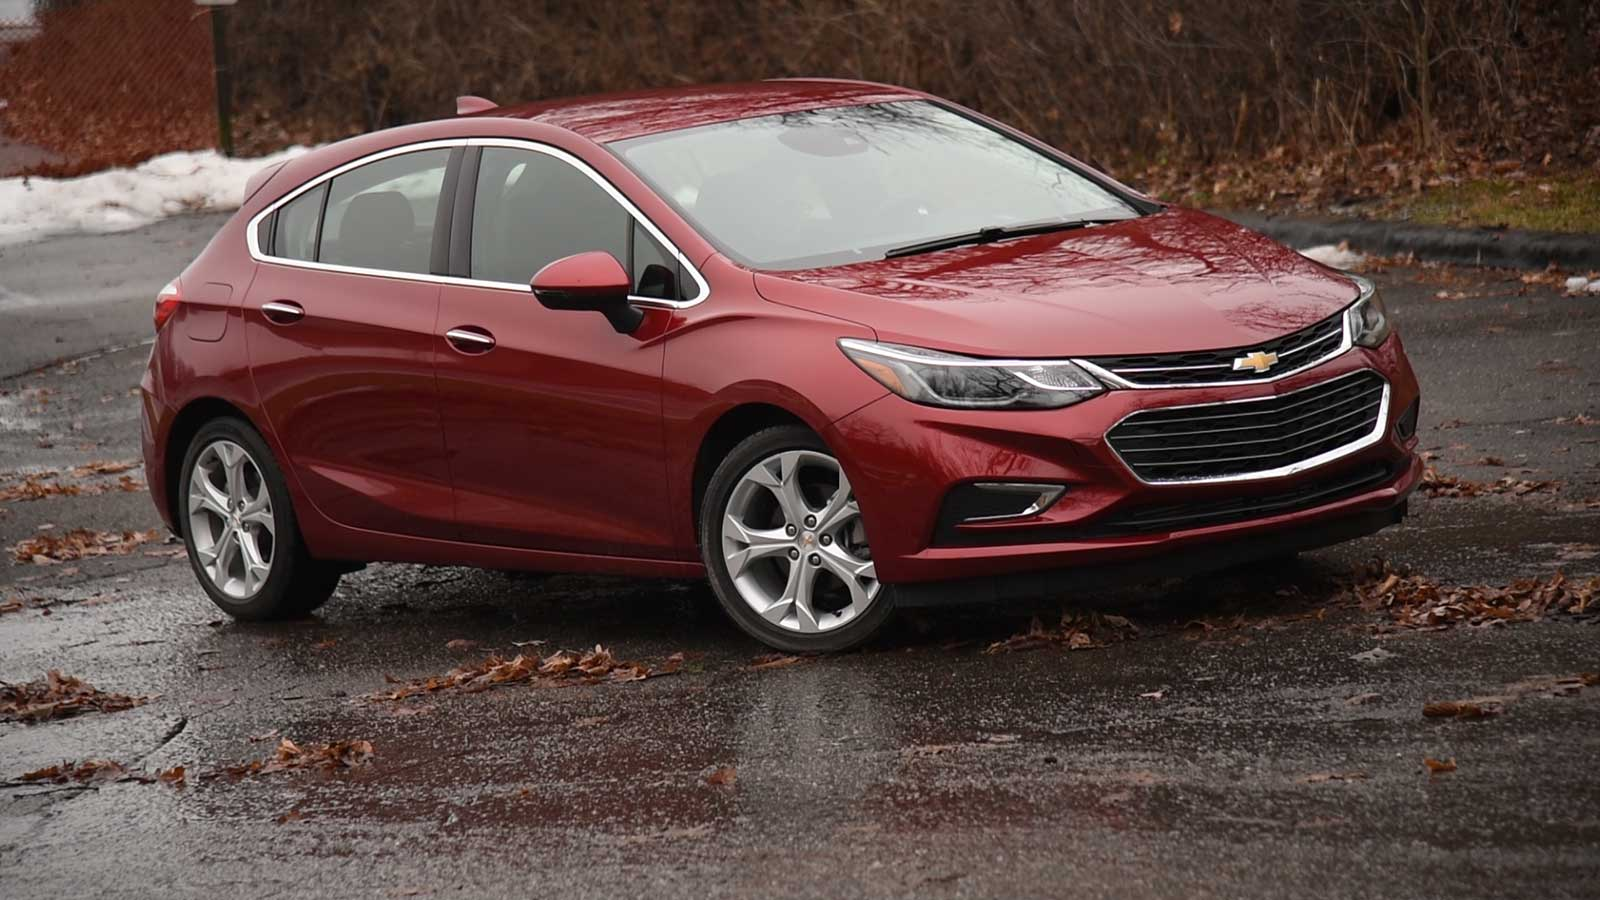 2017 chevrolet cruze hatchback premier review curbed with craig cole news. Black Bedroom Furniture Sets. Home Design Ideas